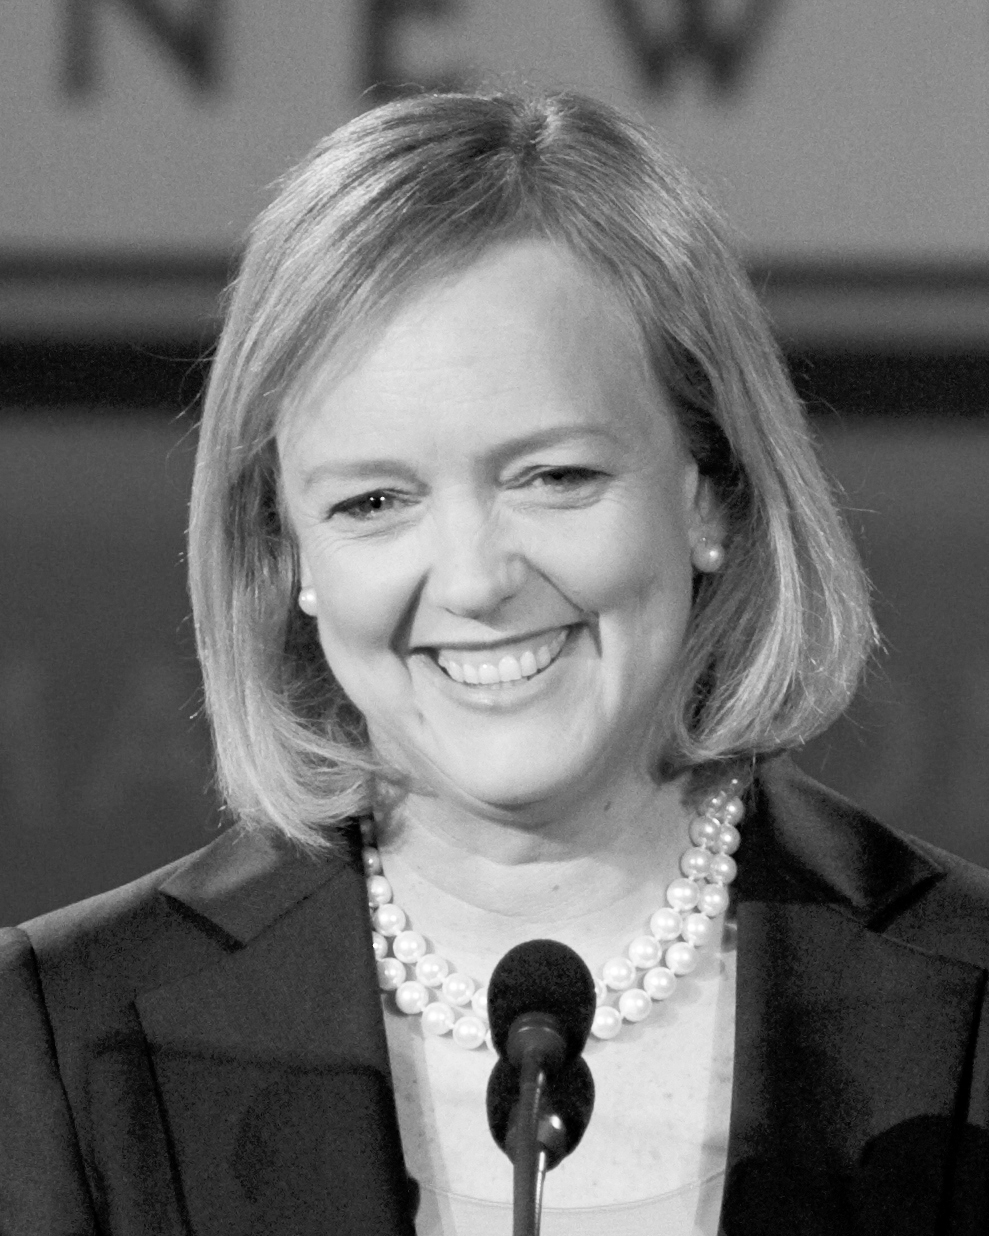 Recently-announced commencement speaker Meg Whitman is an accomplished businesswoman and current president and CEO of Hewlett Packard Enterprise. (credit: Max Morse/Wikimedia Commons)